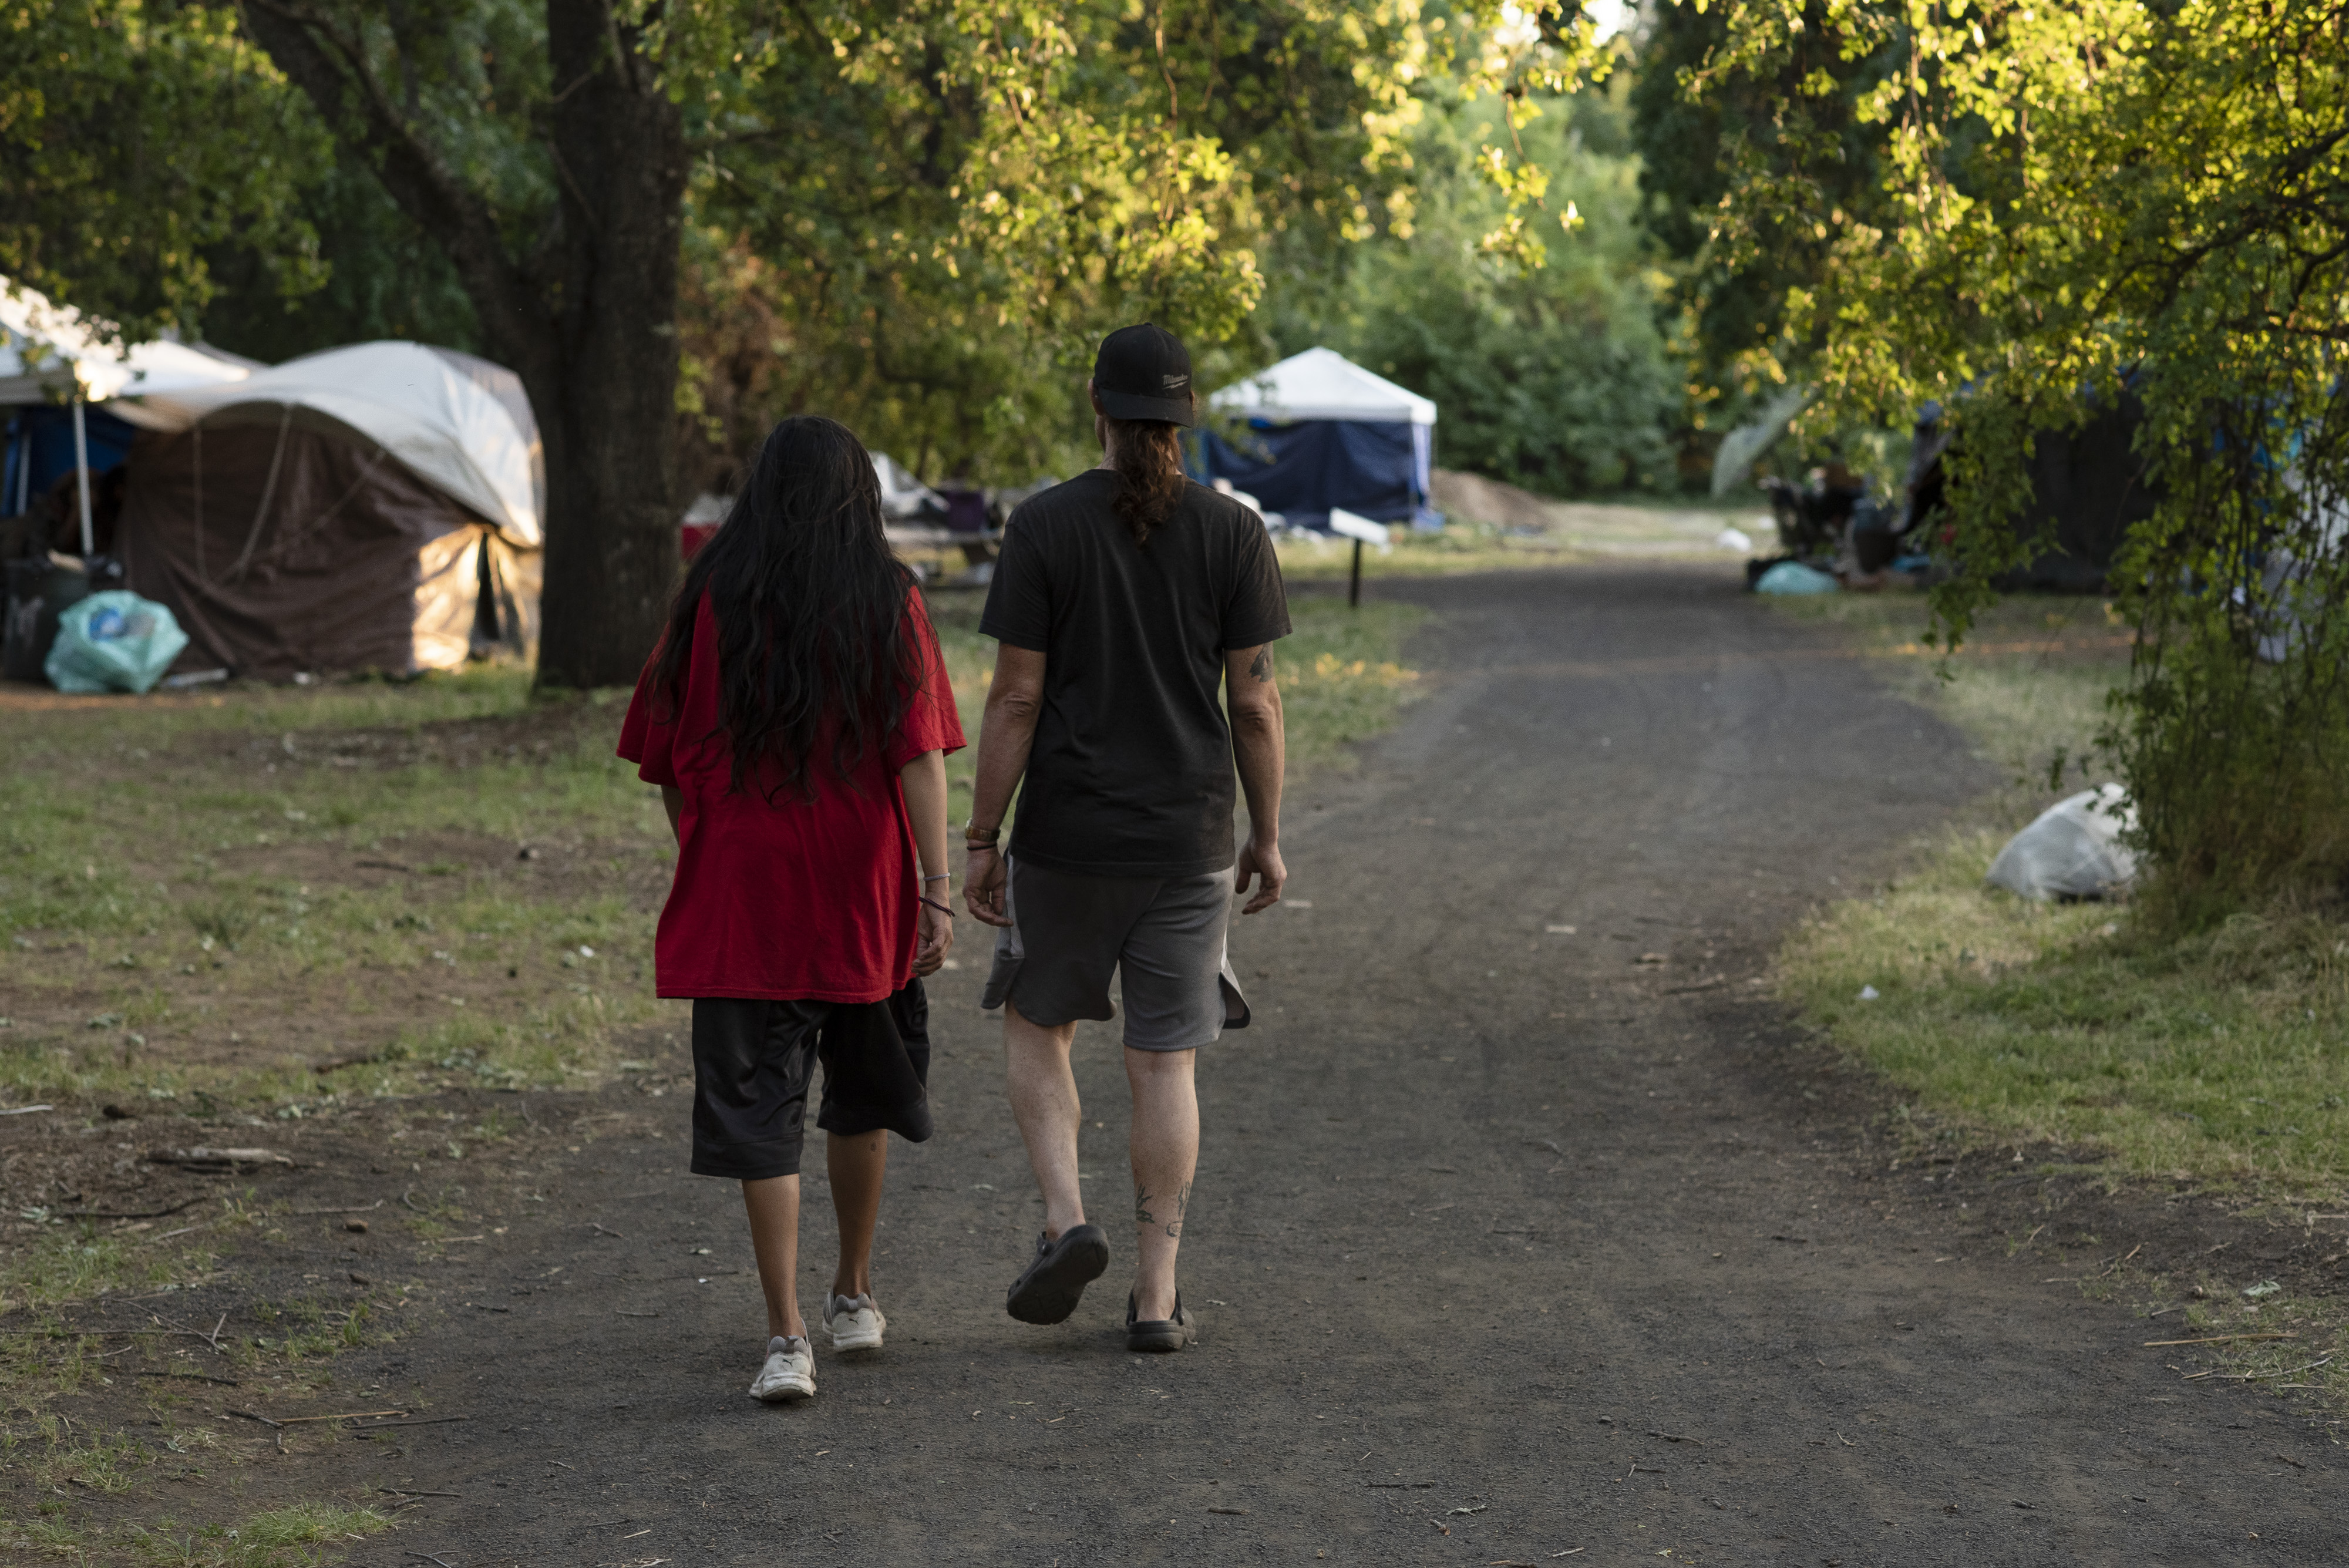 Scenes at Comanche Creek Greenway on Tuesday May 4, 2021 in Chico, Calif. Comanche Creek Greenway is the site of an unhoused community in Chico, Calif.  It's the last public park where unhoused Chico residents are currently safe from sweeps from local police. Due to an ongoing lawsuit there is a temporary restraining order preventing police from evicting the unhoused people currently living at the park.  Salgu Wissmath for The Intercept